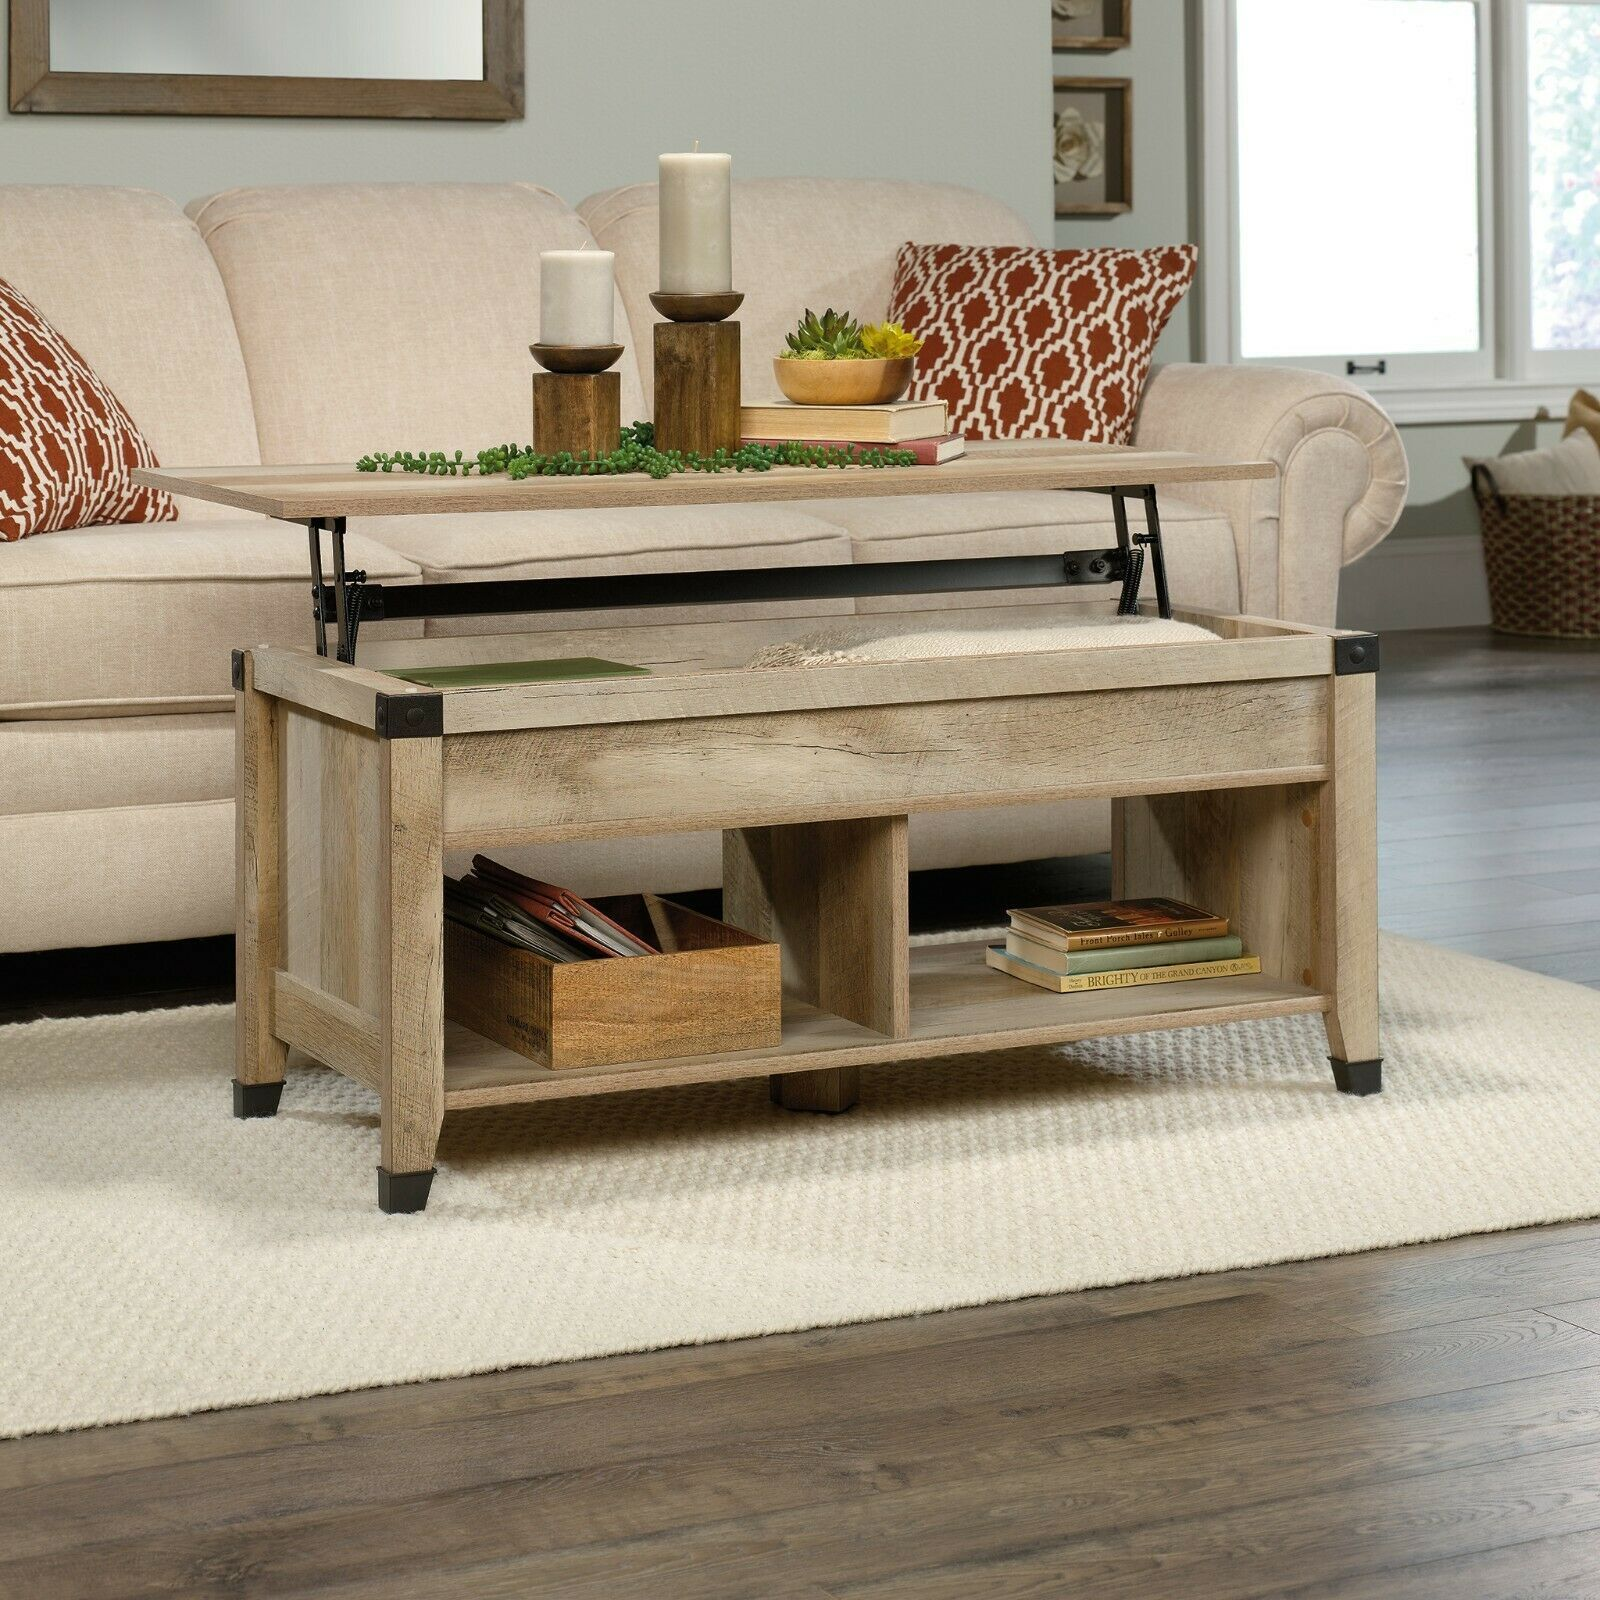 Coffee table w lift top trunk flip up storage cubes wood